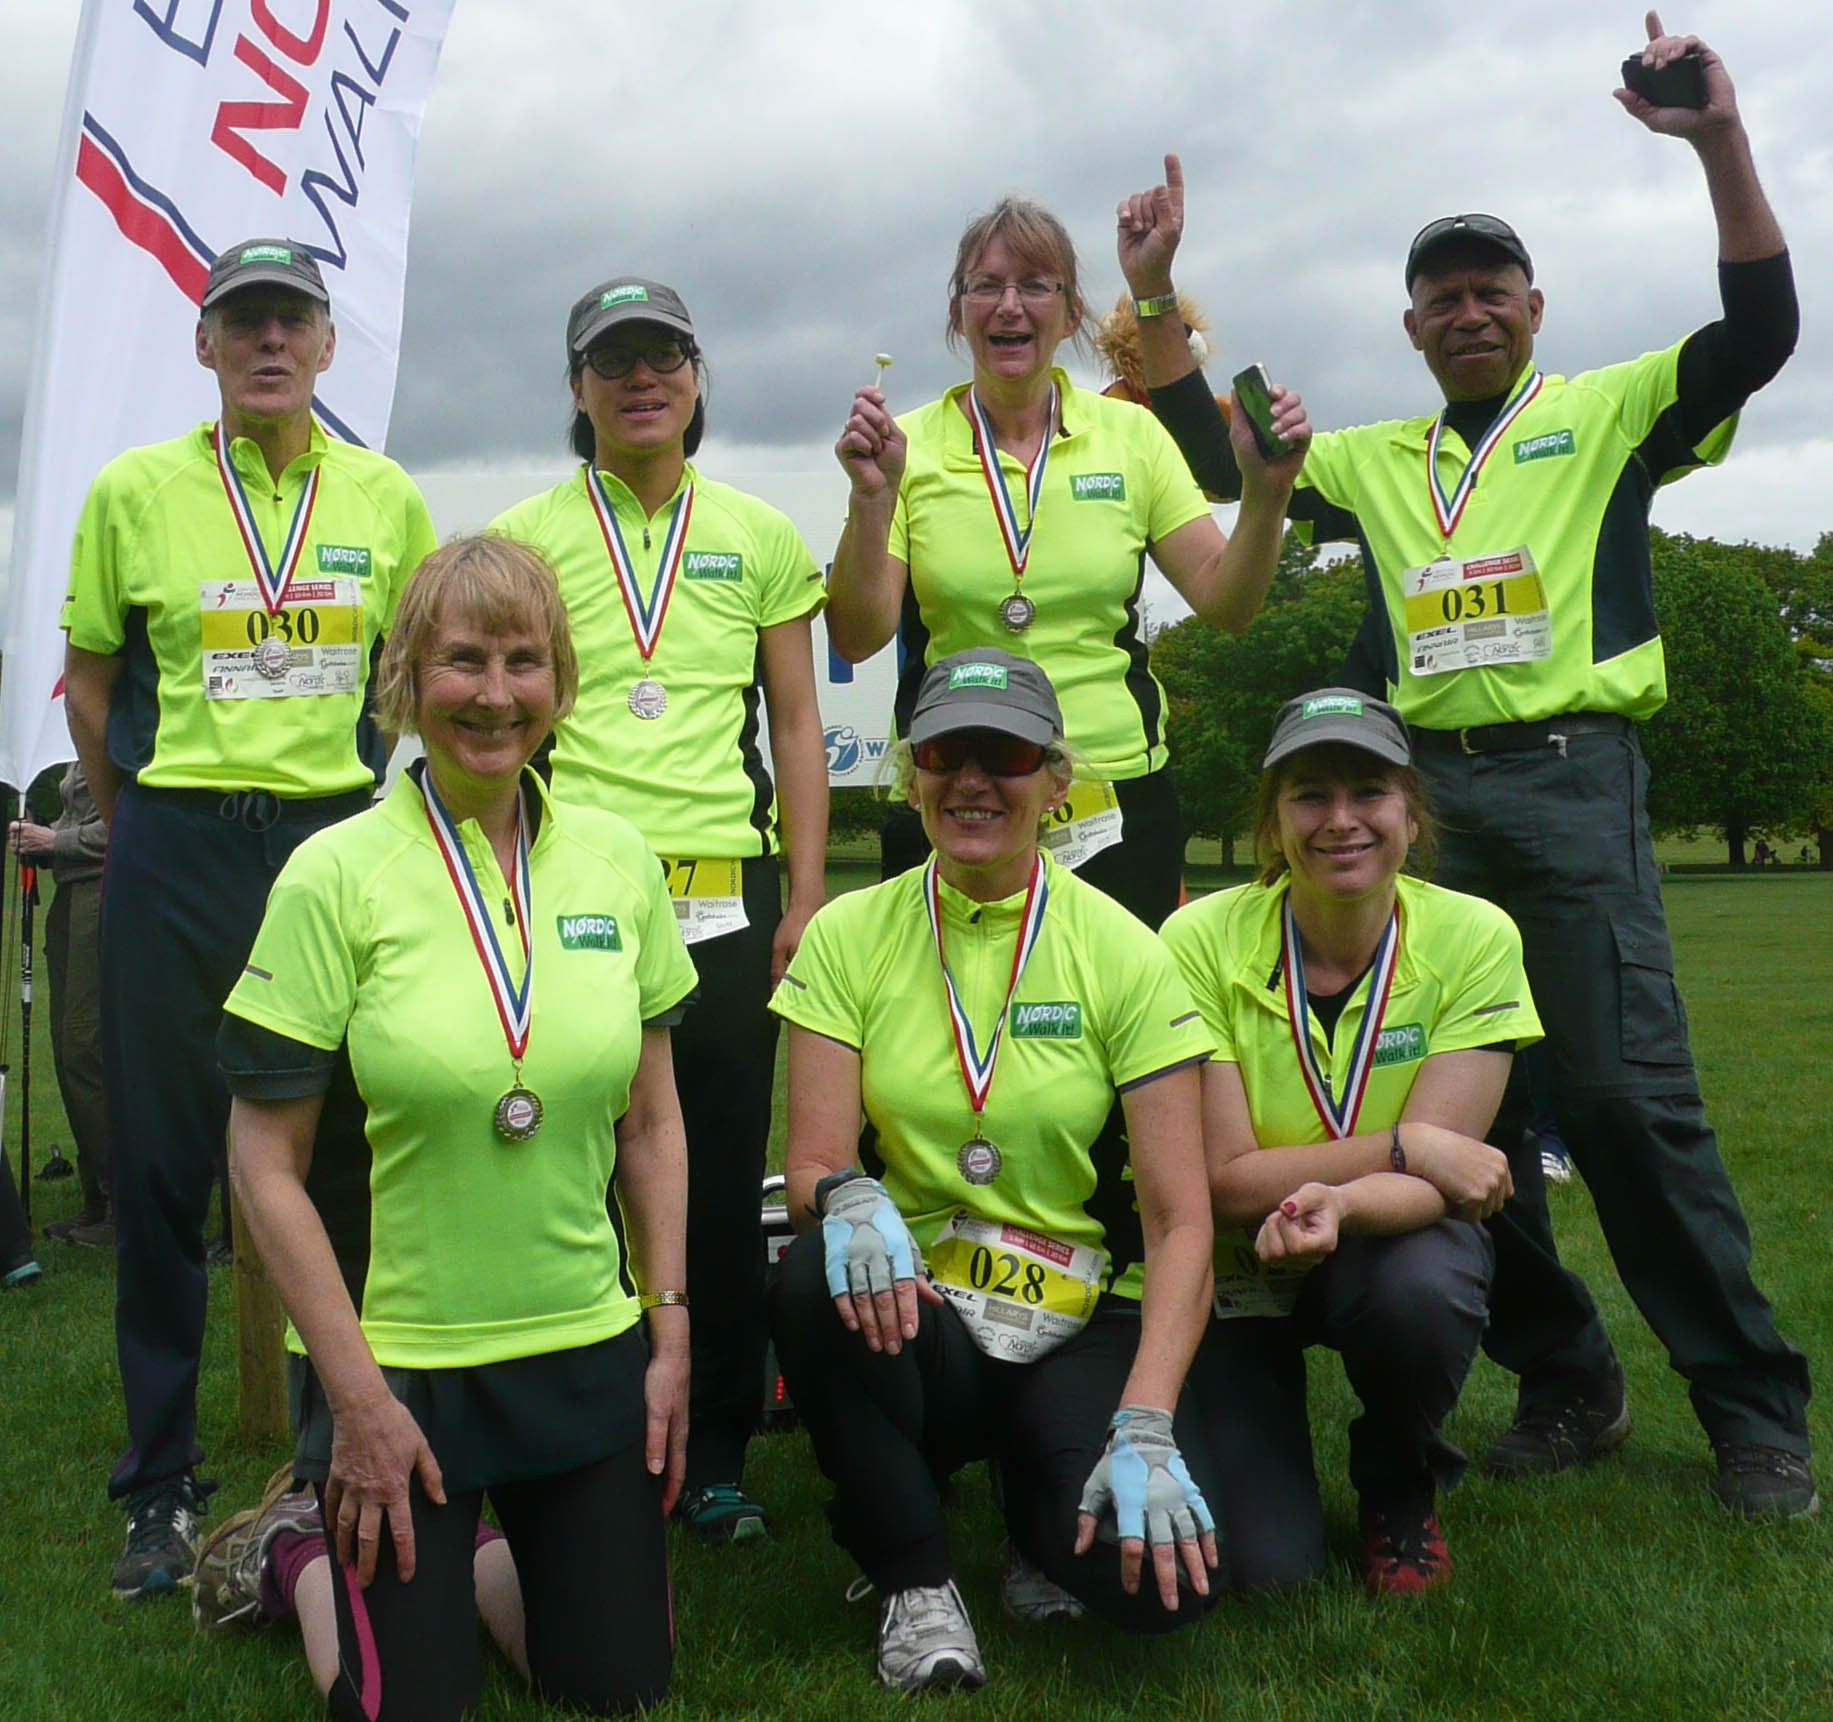 10K Nordic Walking race winners